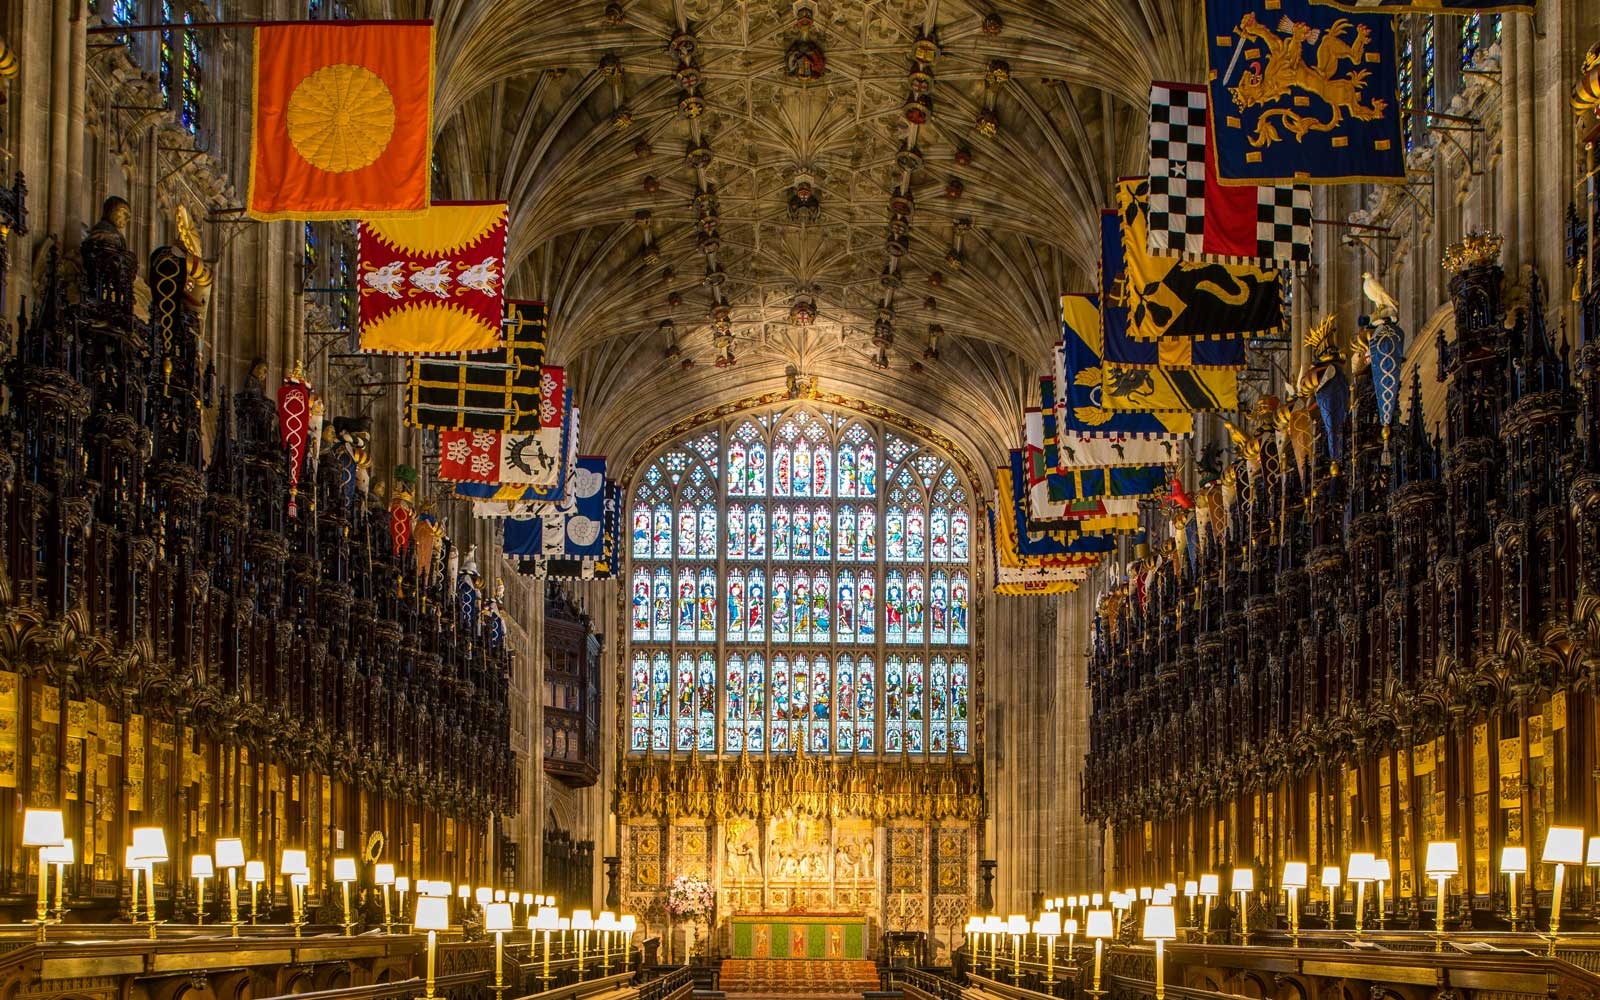 Inside St. George's Chapel, Where Prince Harry and Meghan Markle Will Get Married